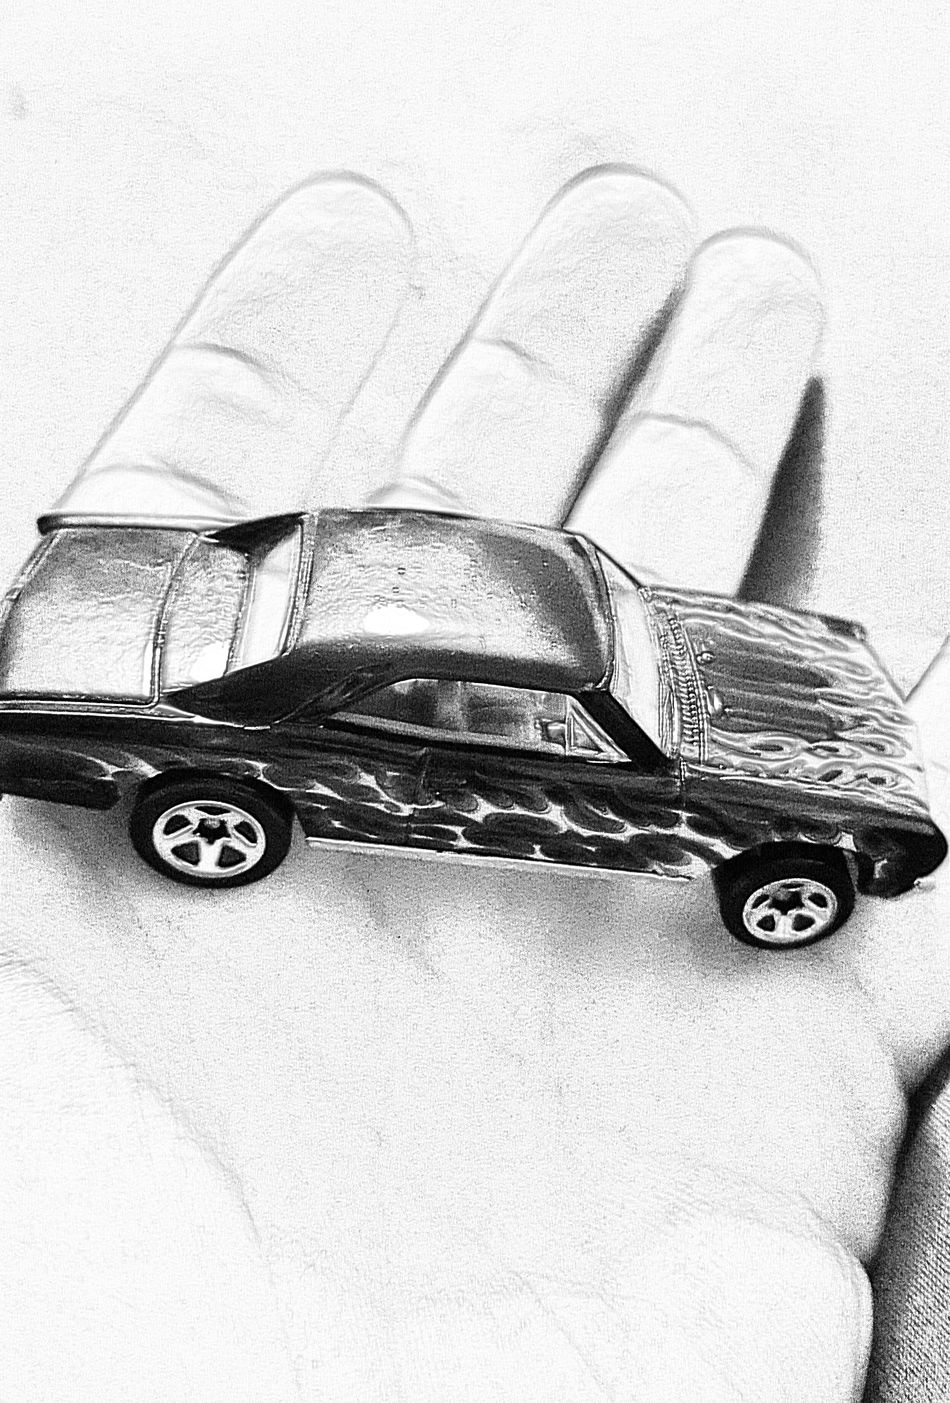 Bnw_collection Sketch Filter '67 Chevelle Ss Hot Wheels Hot Wheels Heaven Toys Speaking Without Words Dreams Running Out Dreaming